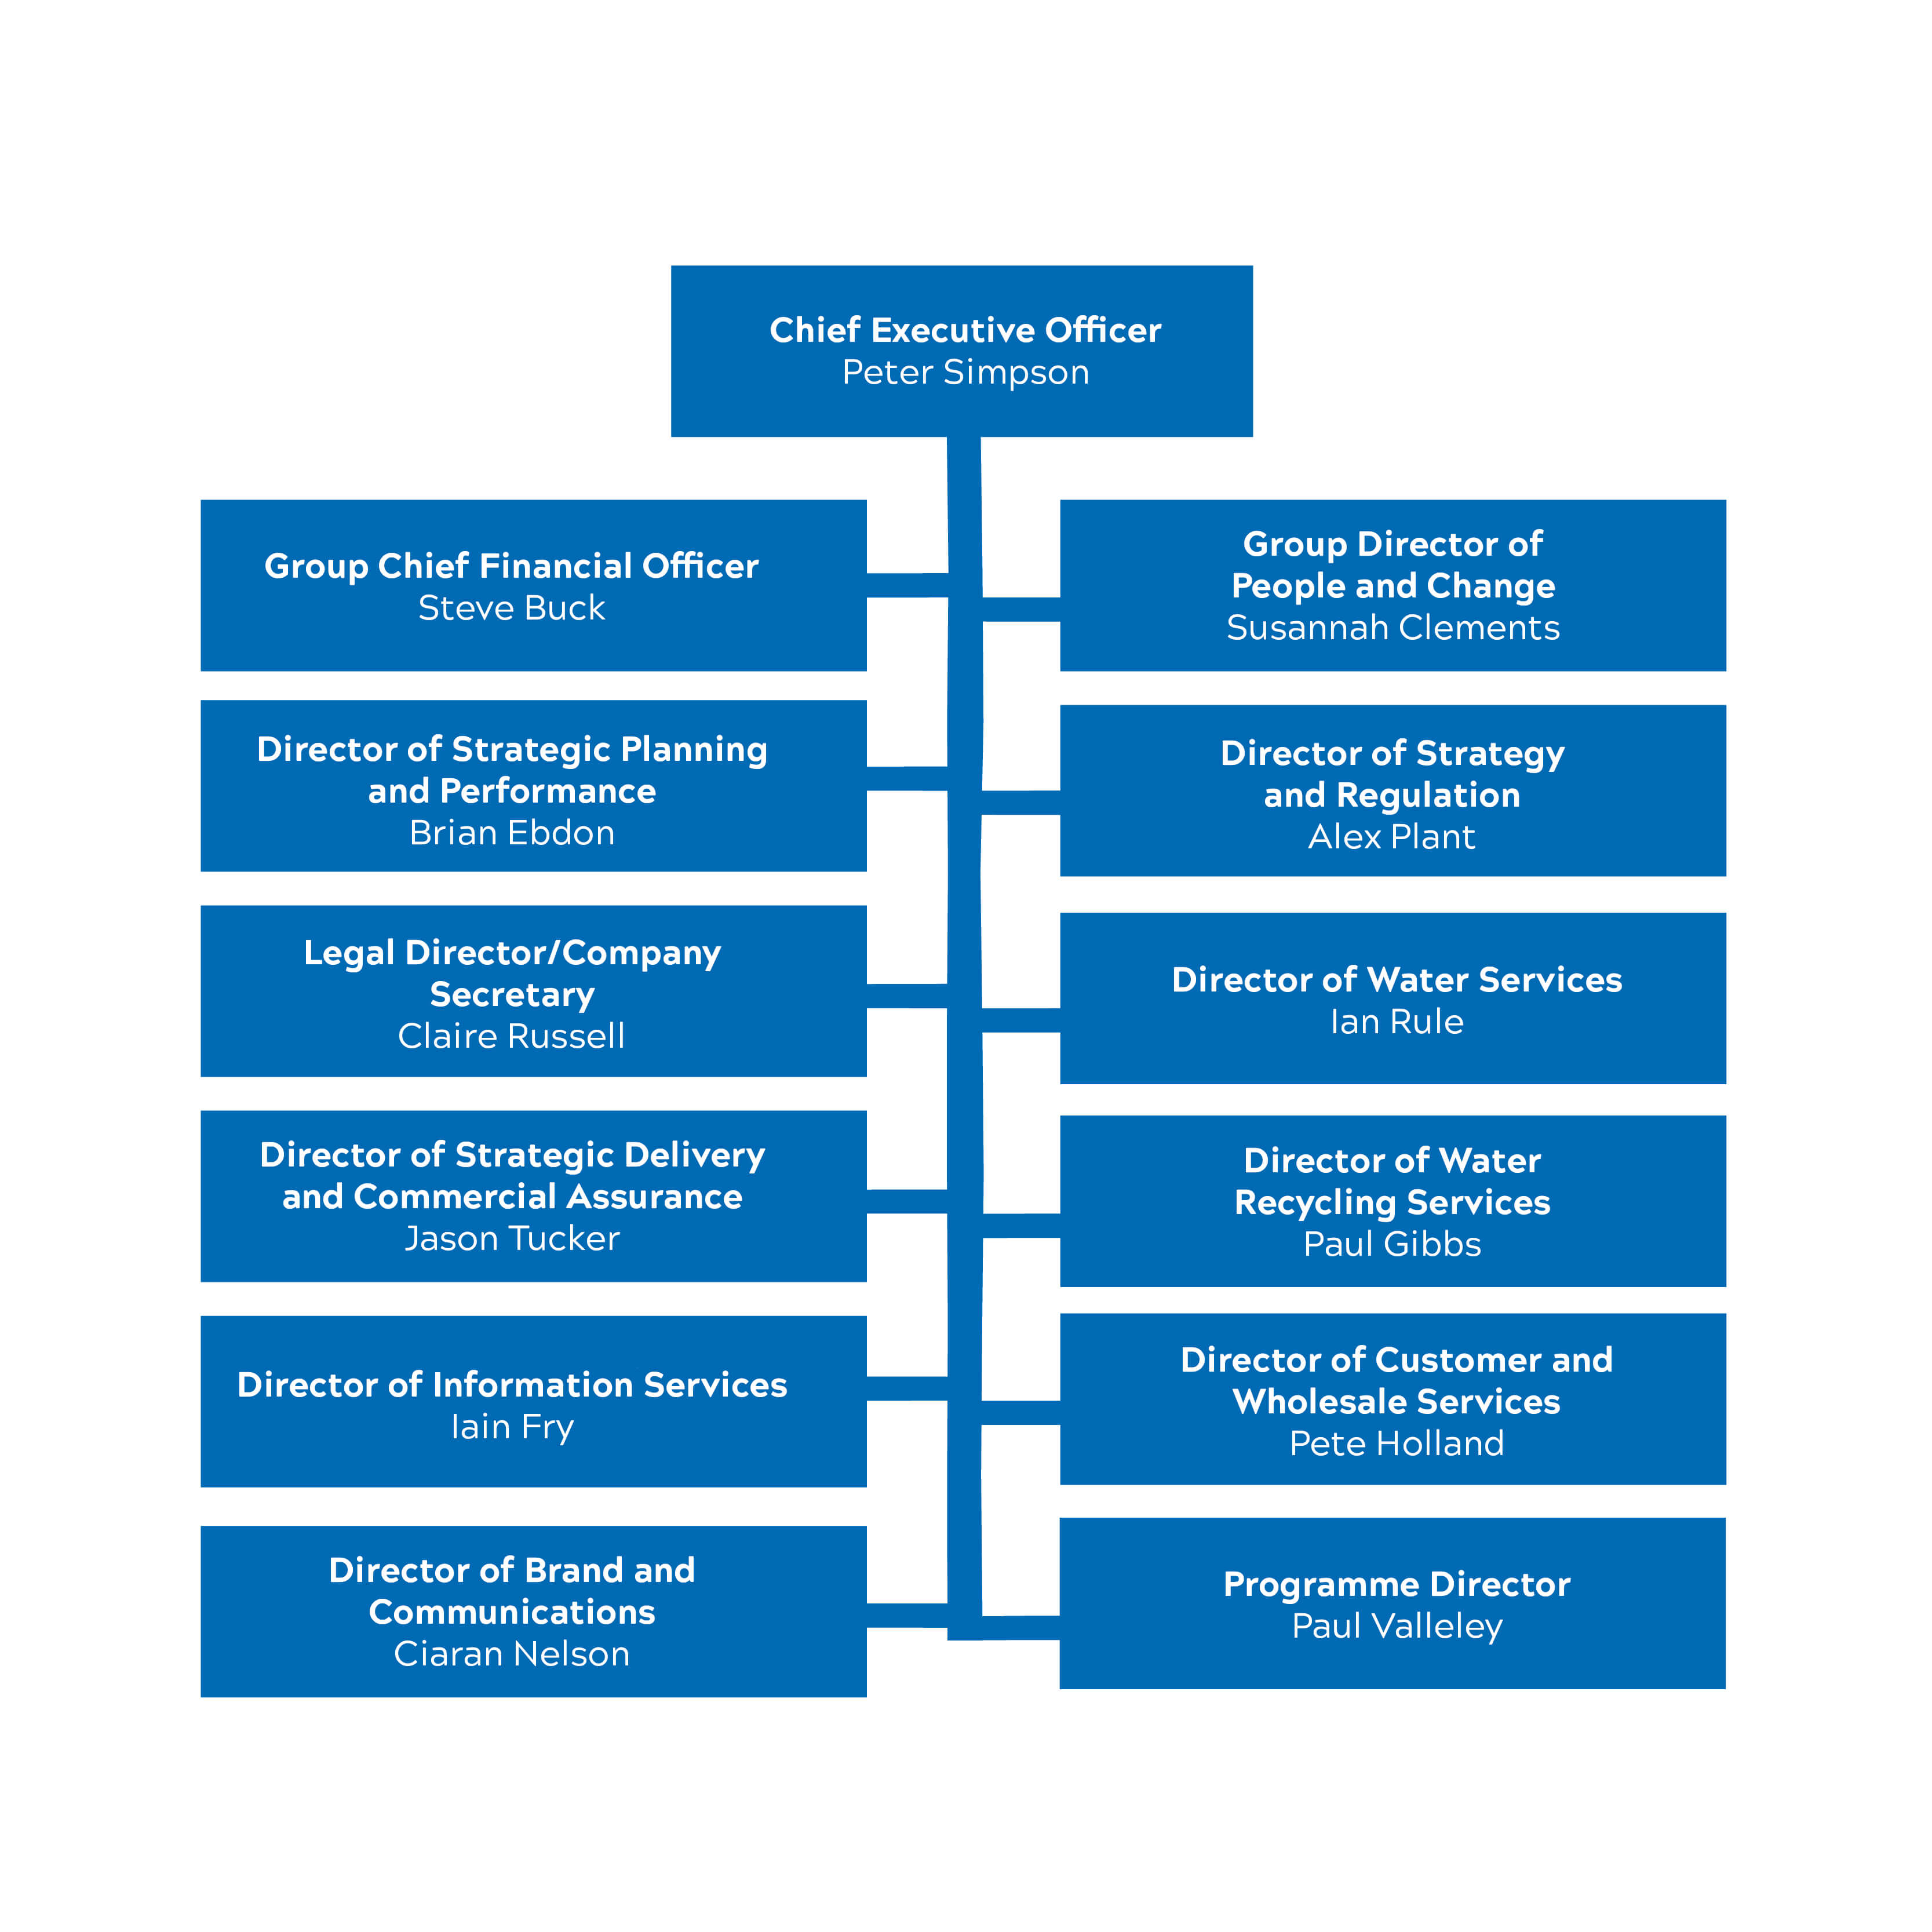 Organisation chart of Anglian Water Board